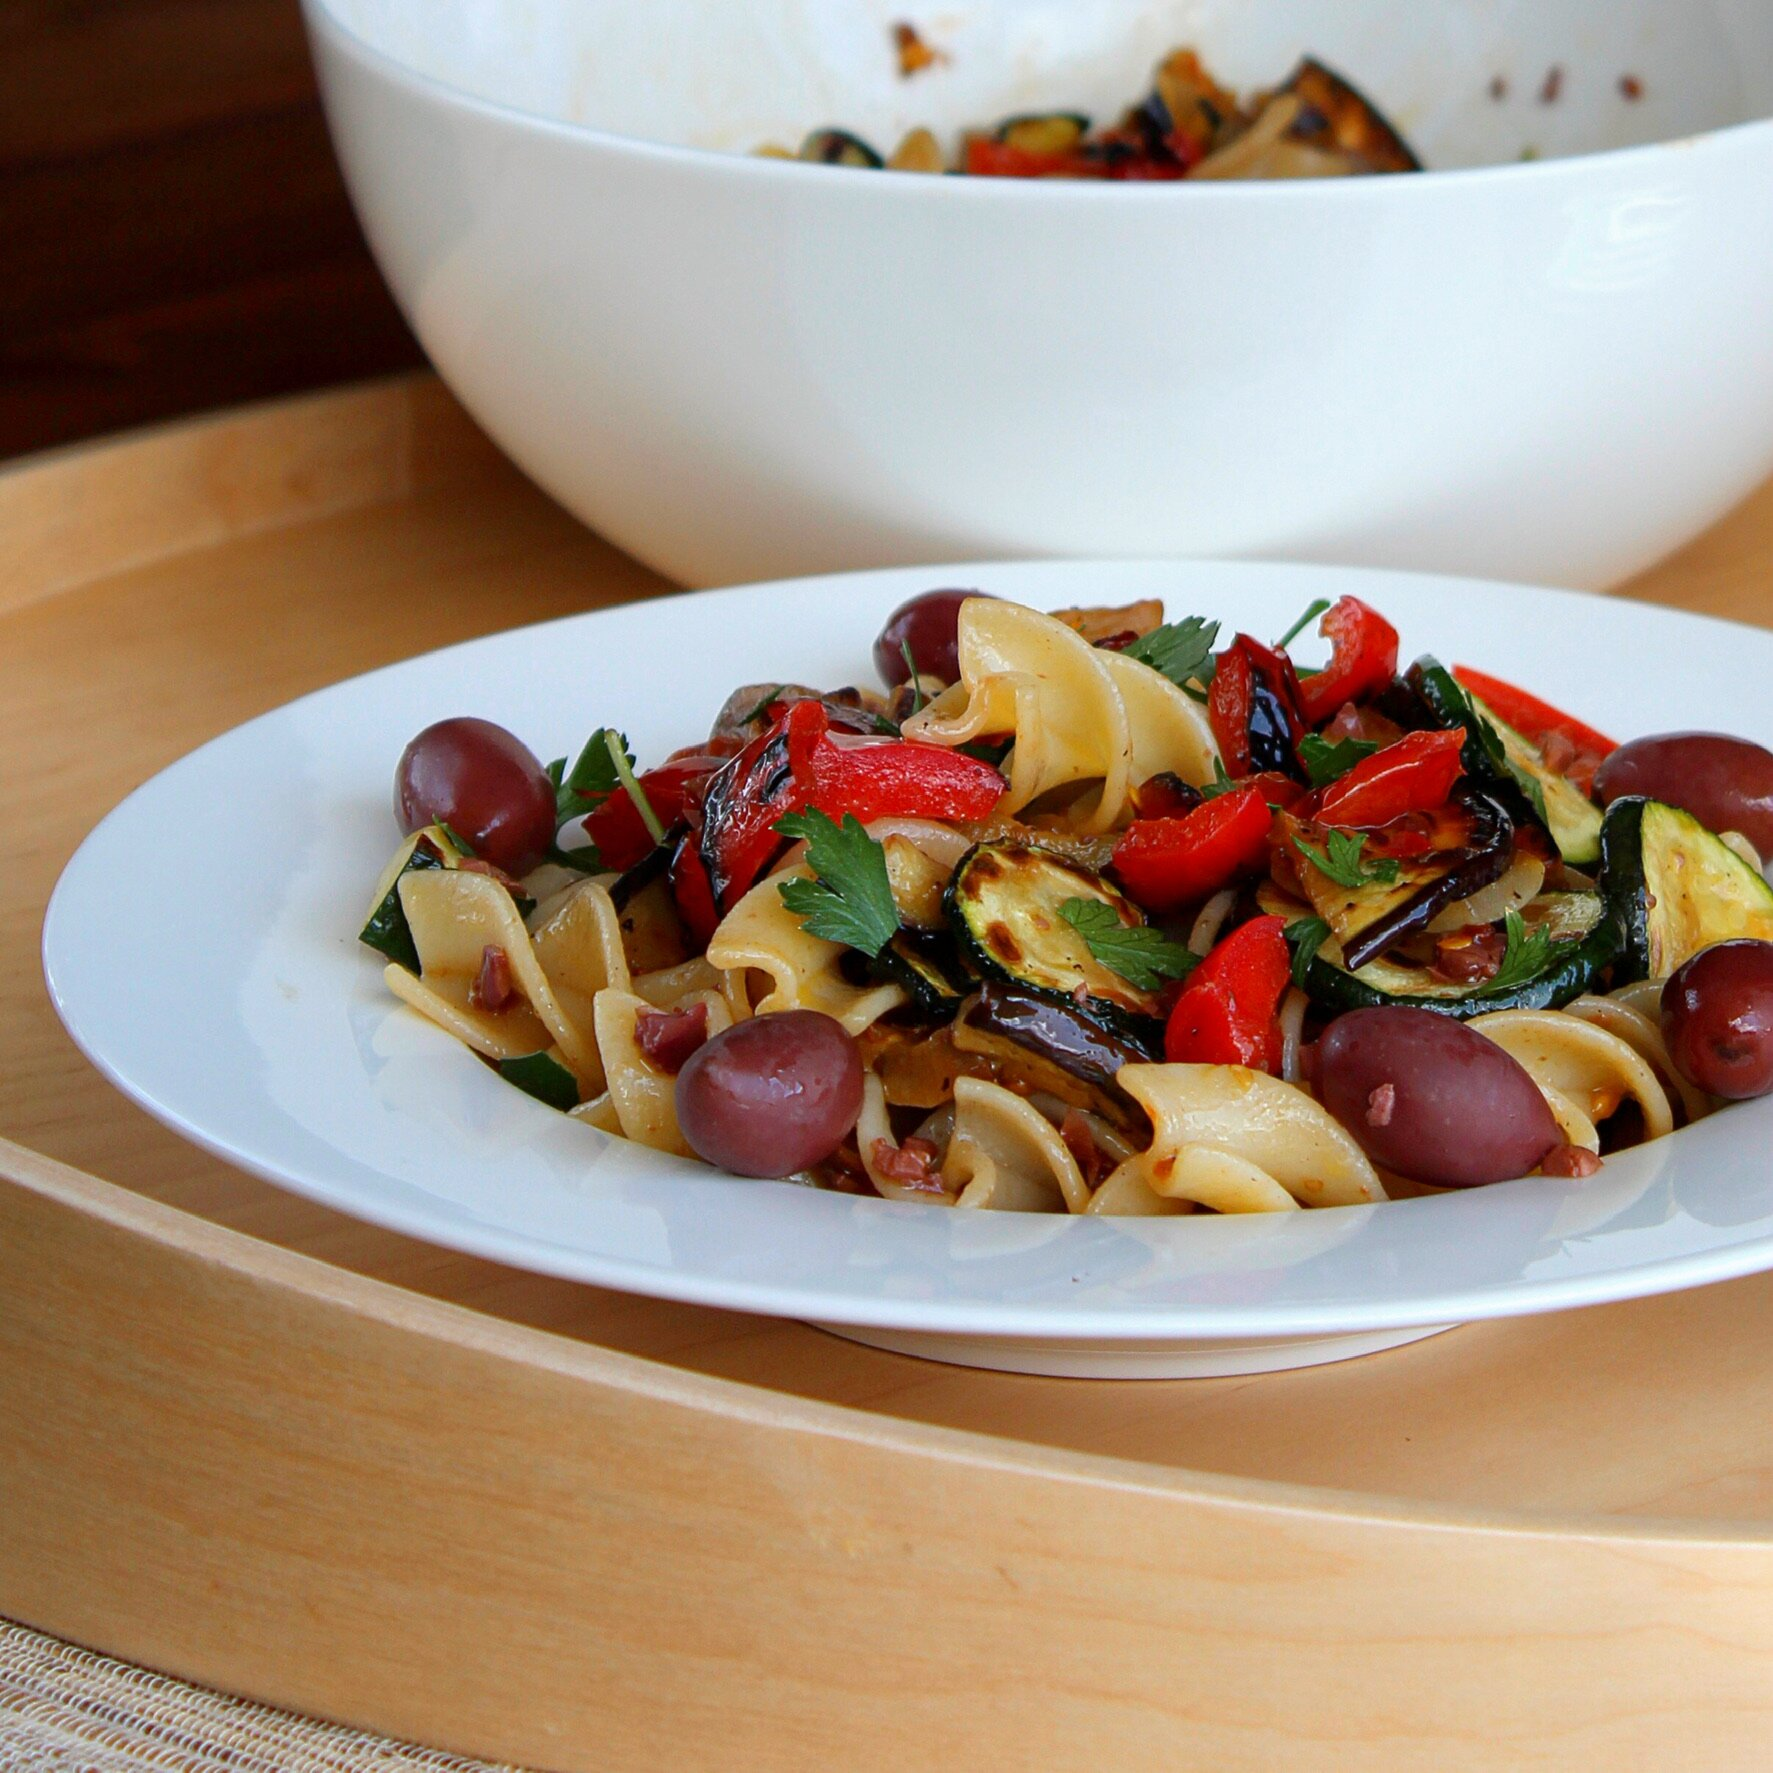 vegan italian pasta salad with vegetables and olives